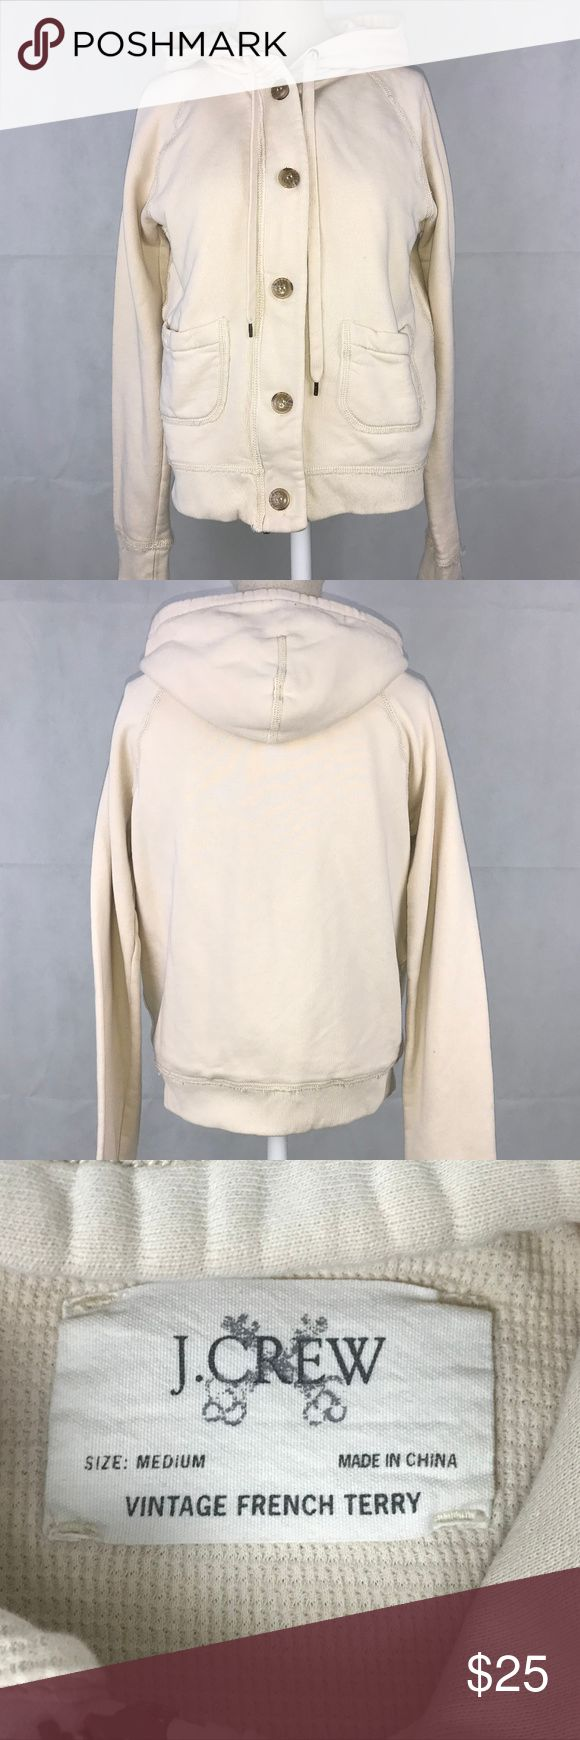 J Crew vintage french terry waffle lined hoodie J Crew women's size Medium beige/ivory vintage french terry zip button waffle lined hoodie jacket. Made of 100% cotton. Chest measurement: 18 inches (underarm to underarm) Sleeve measurement: 28 inches (neck to hem) Length measurement: 20 inches J. Crew Tops Sweatshirts & Hoodies